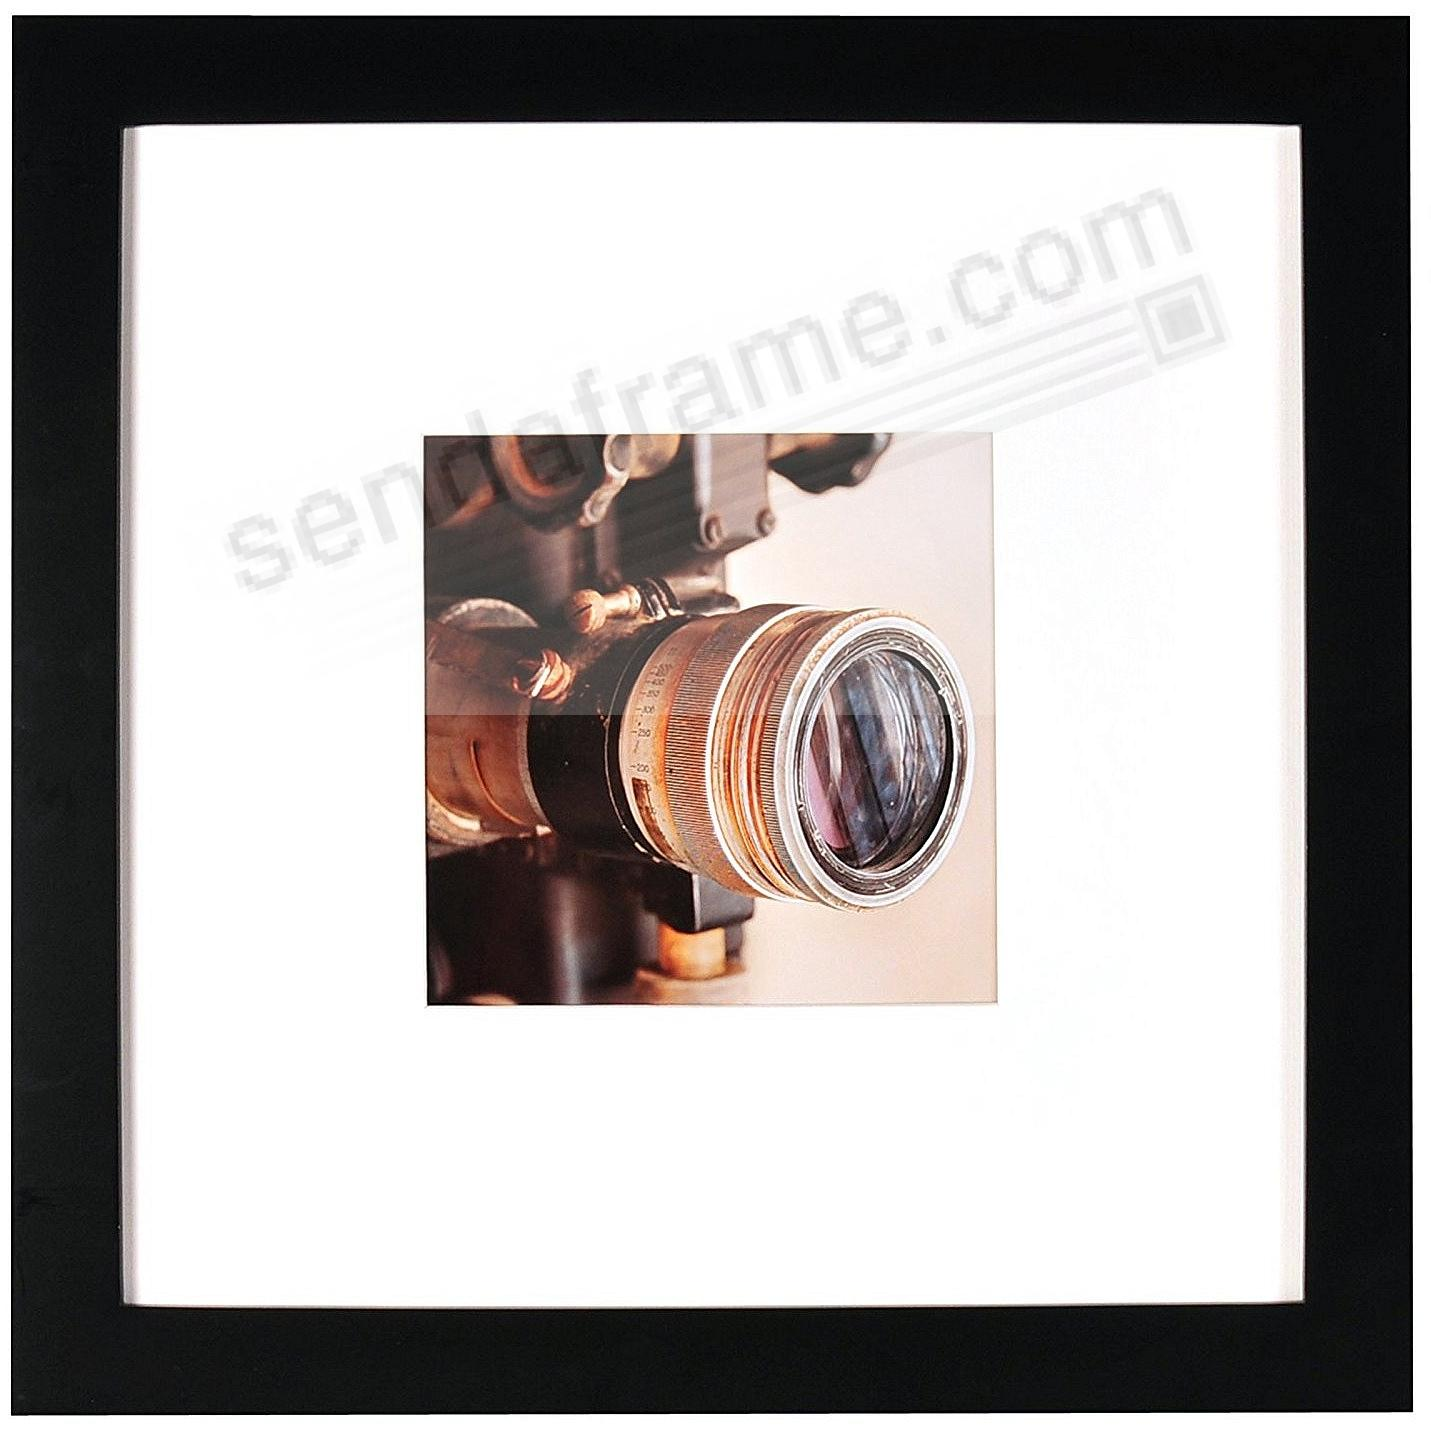 Matte-Black WOODBURY matted wood frame 16x16/8x8 from ARTCARE® by ...